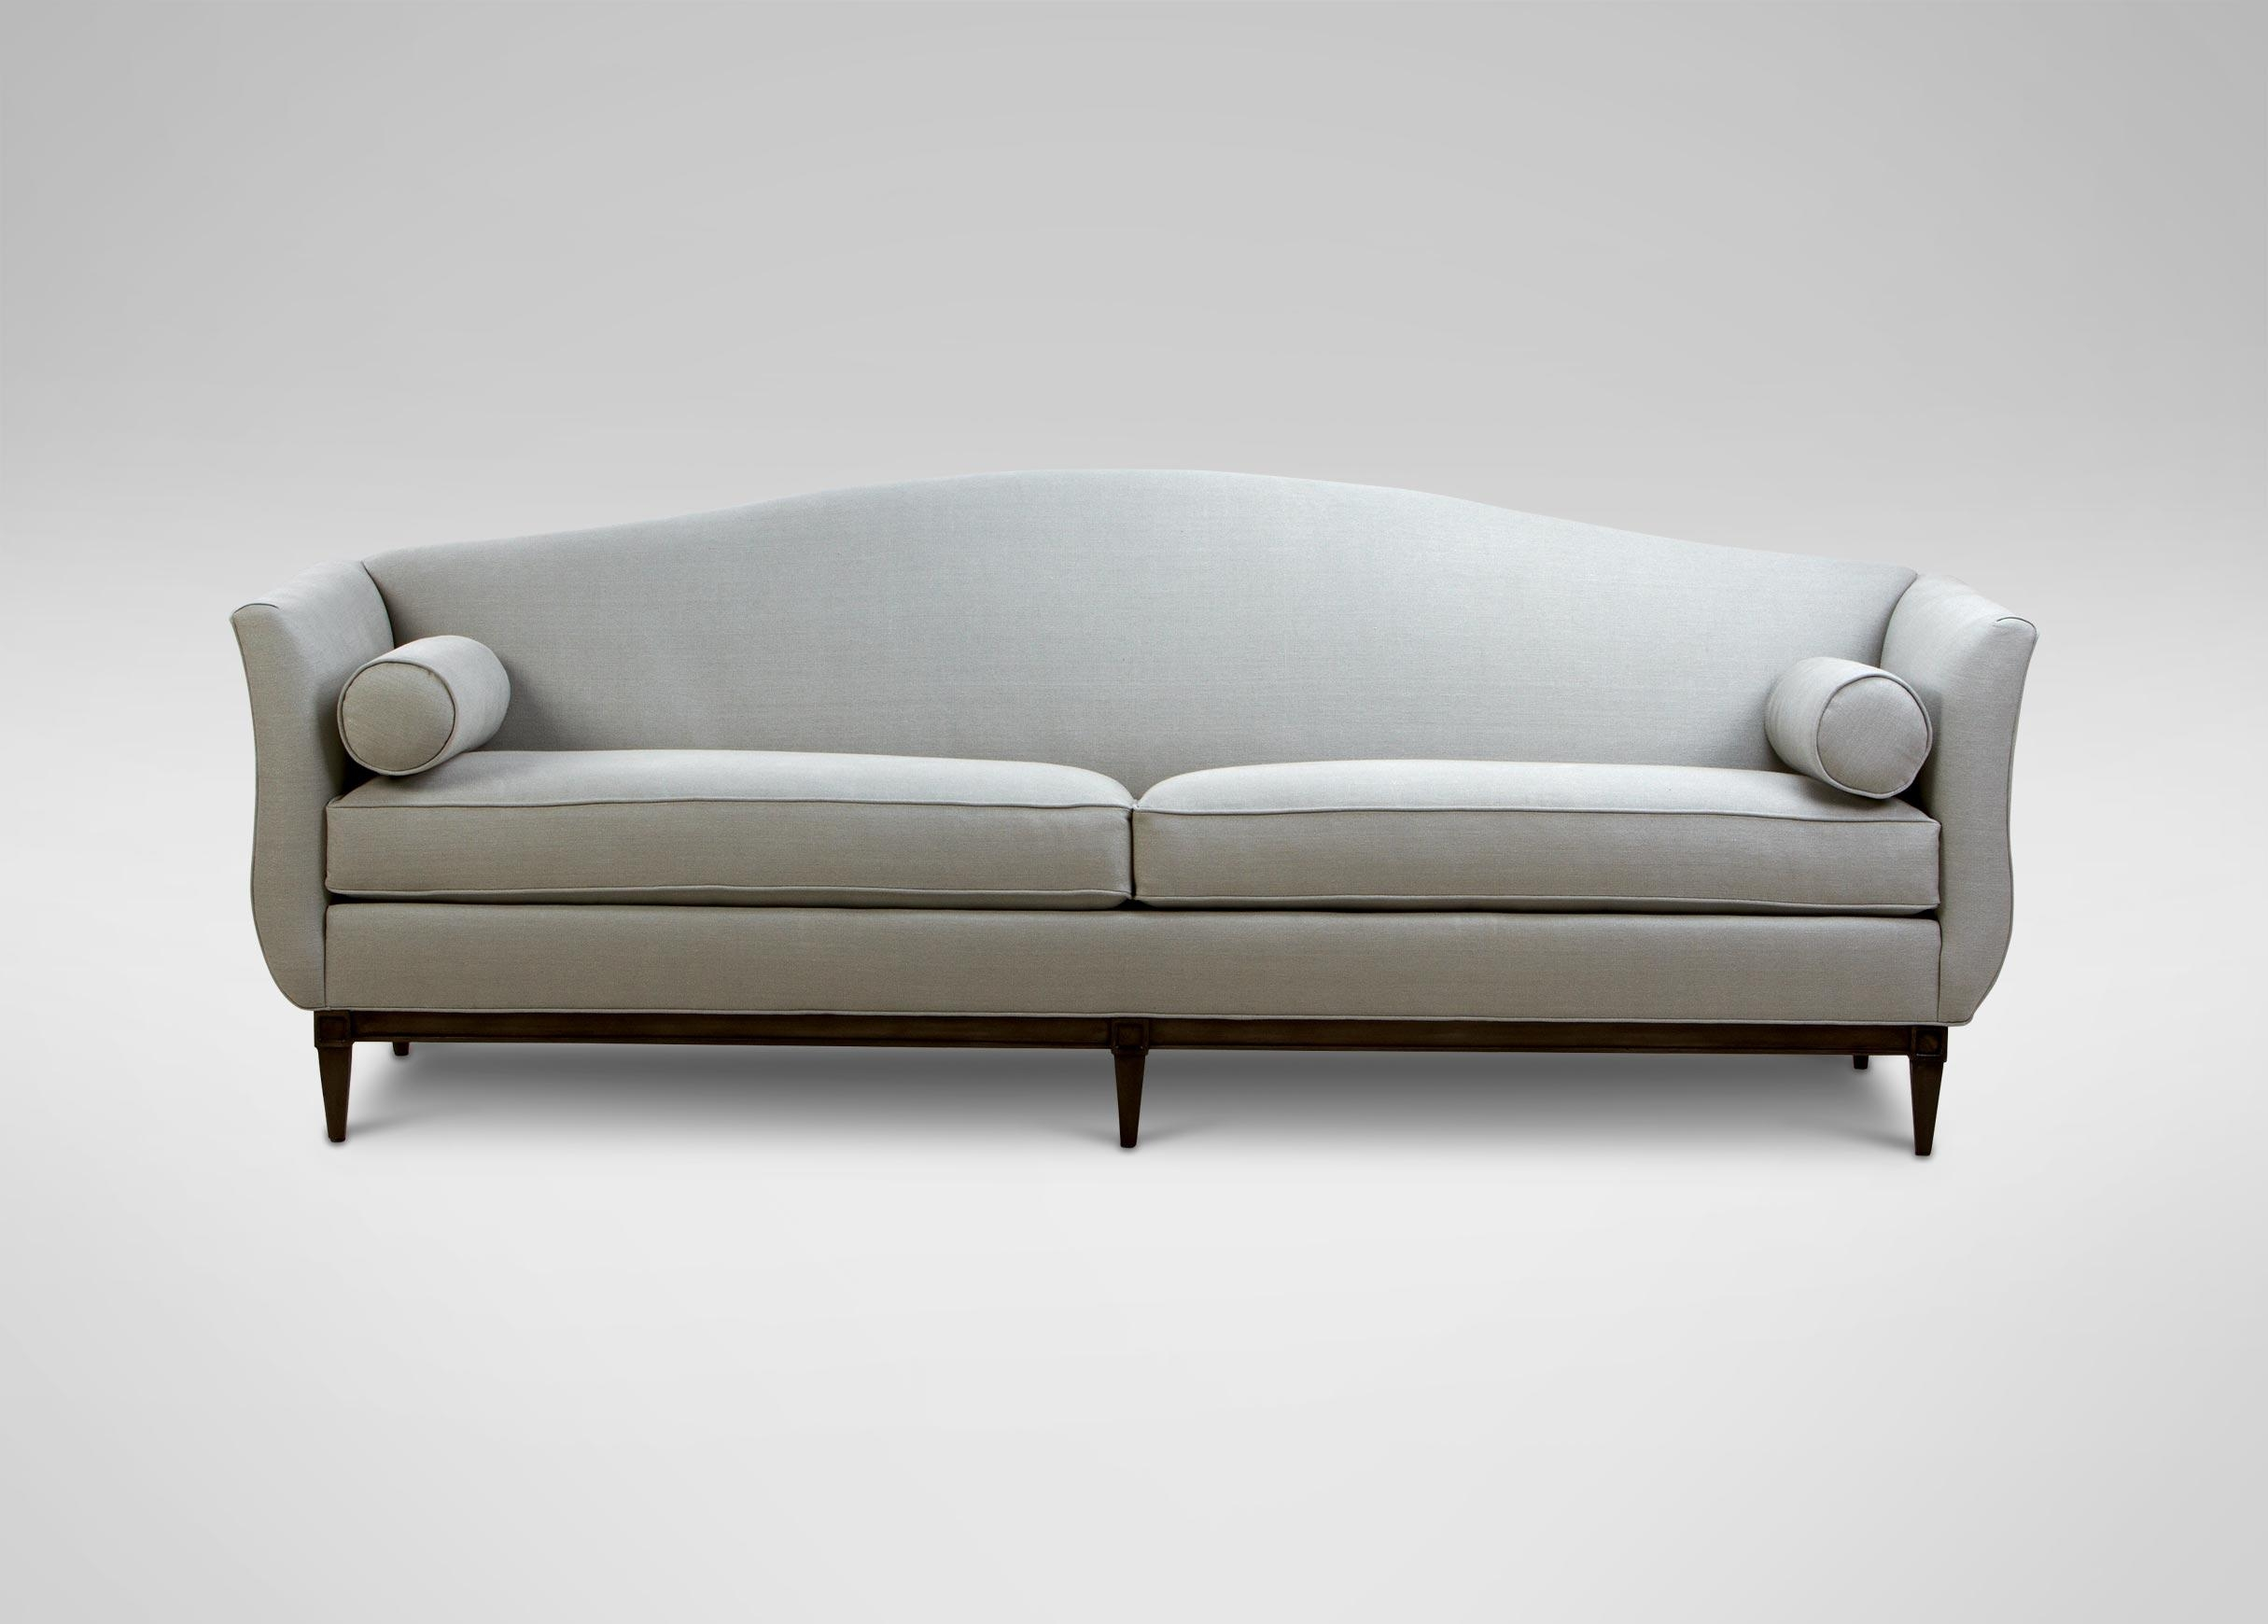 Audrey Sofa | Sofas & Loveseats Throughout Ethan Allen Sofas And Chairs (Image 4 of 20)